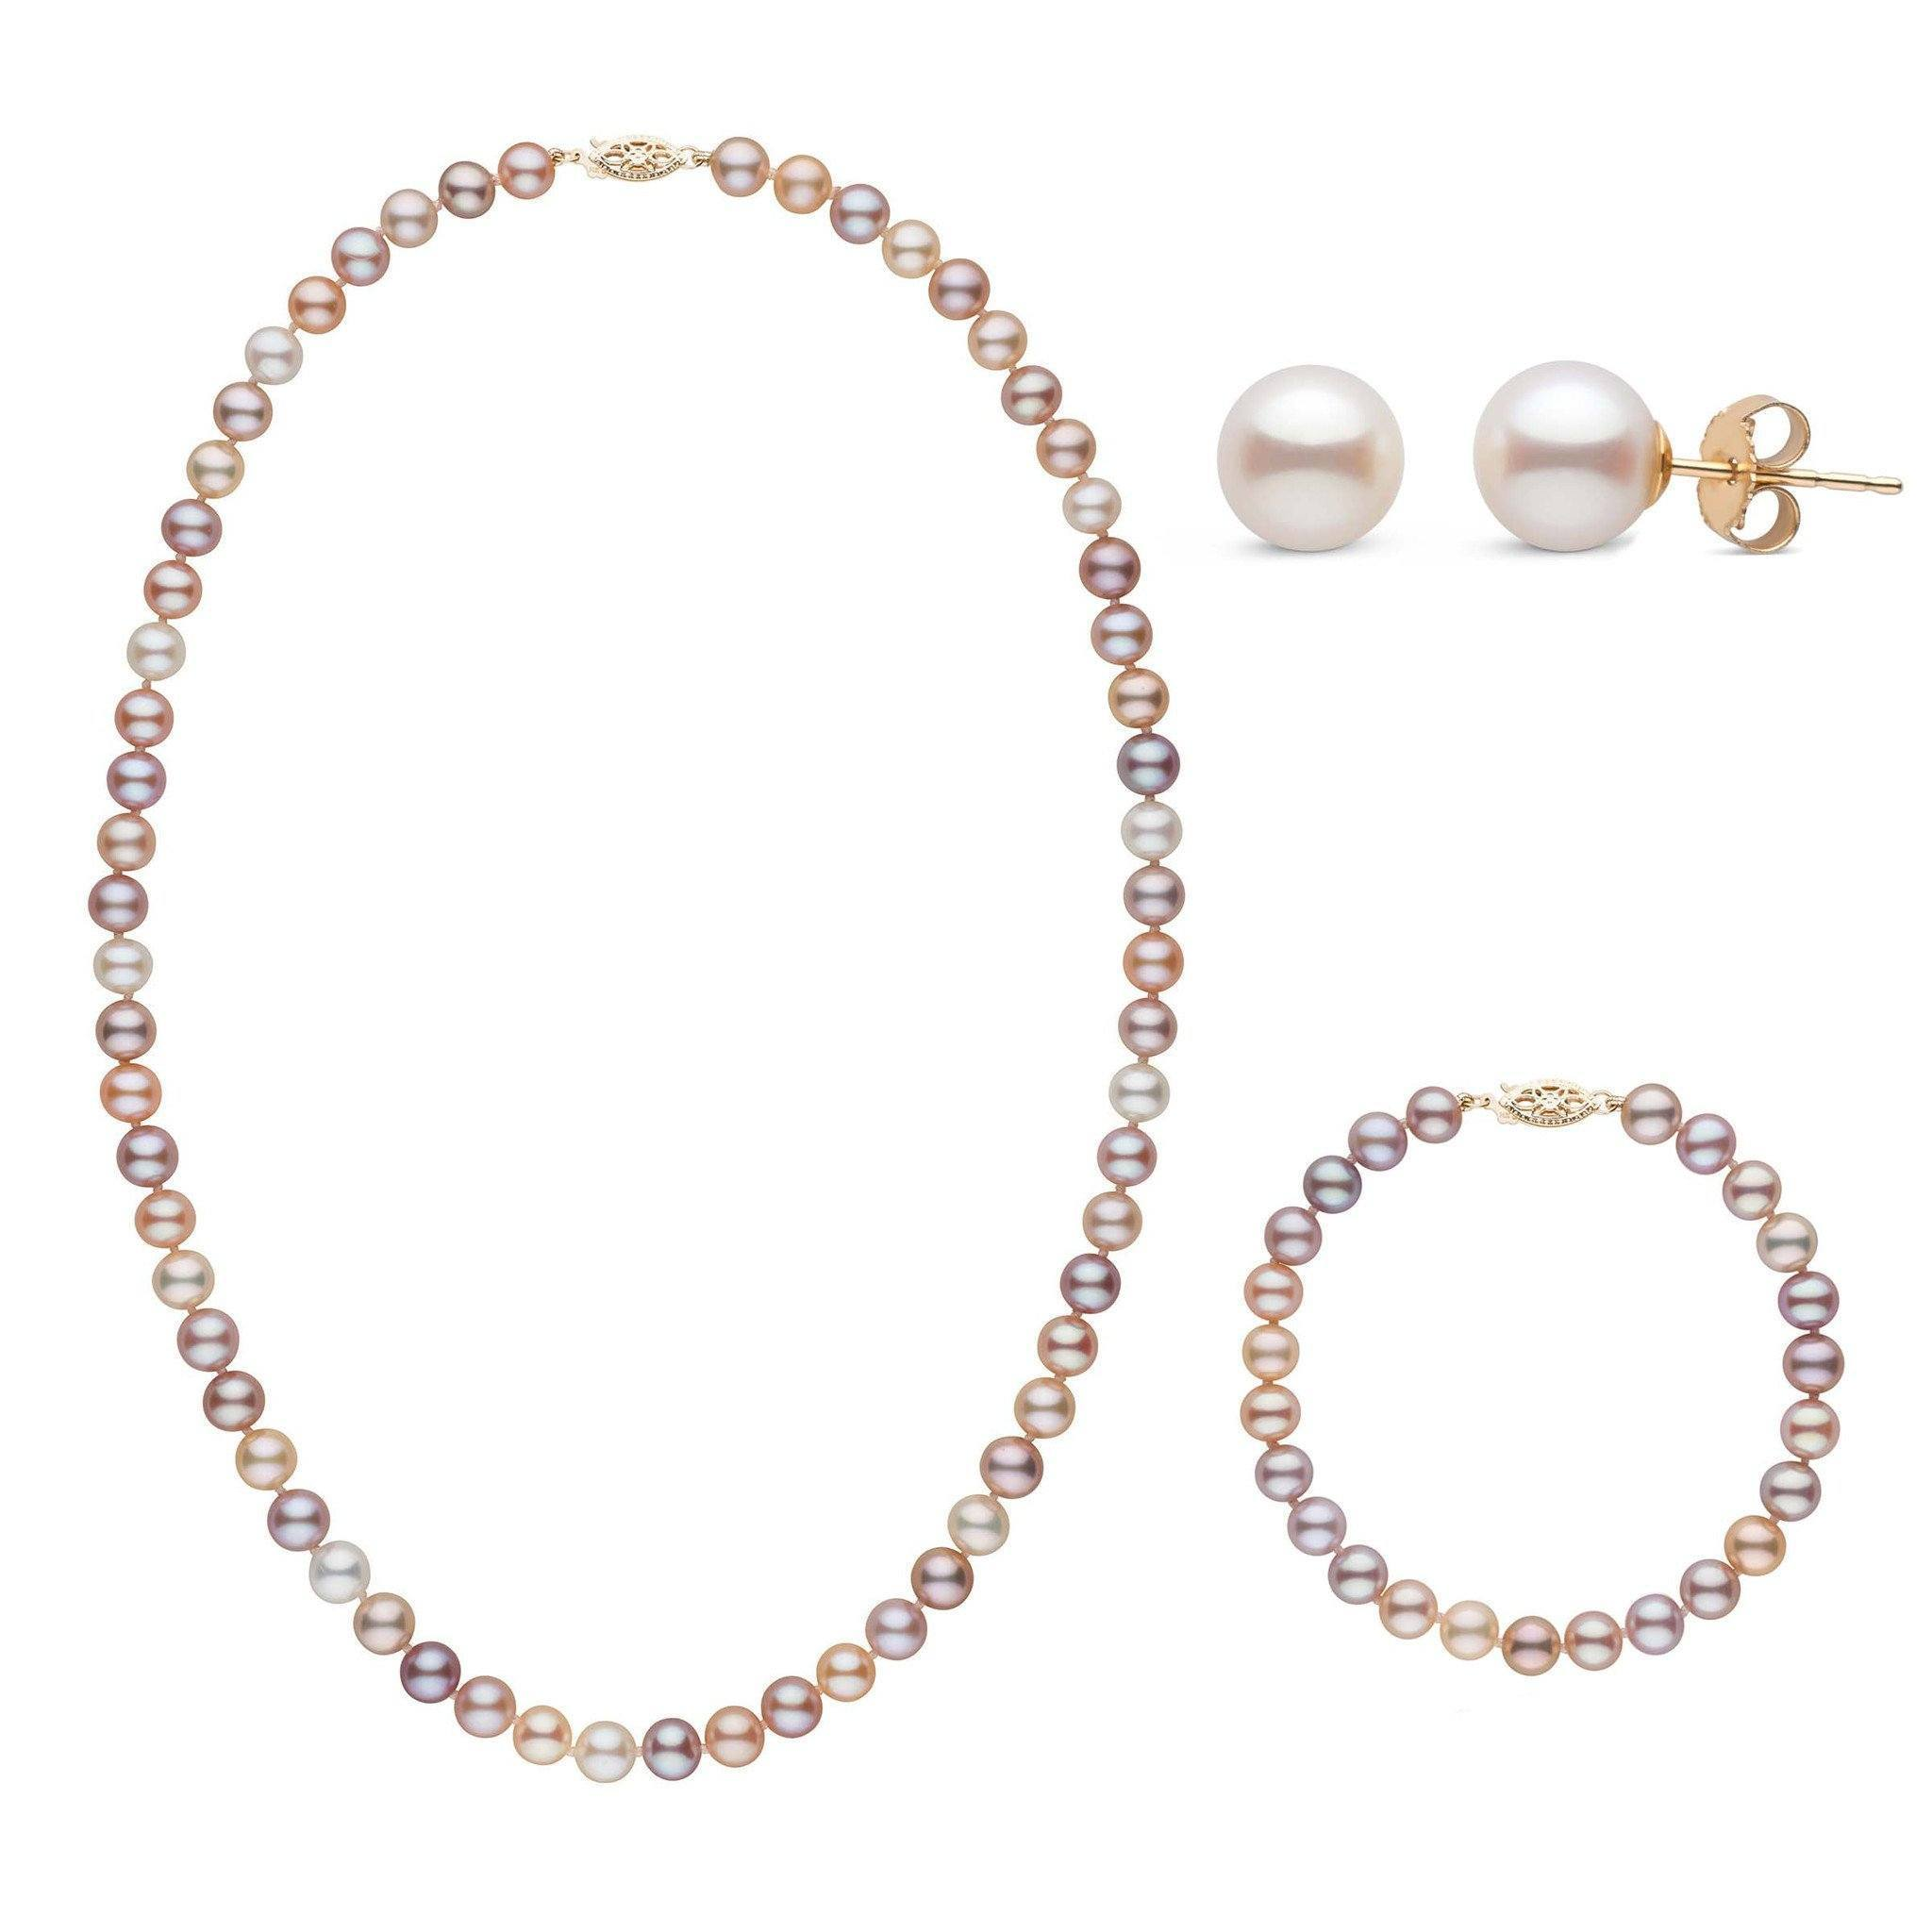 18 Inch 3 Piece Set of 6.5-7.0 mm AAA Multicolor Freshwater Pearls